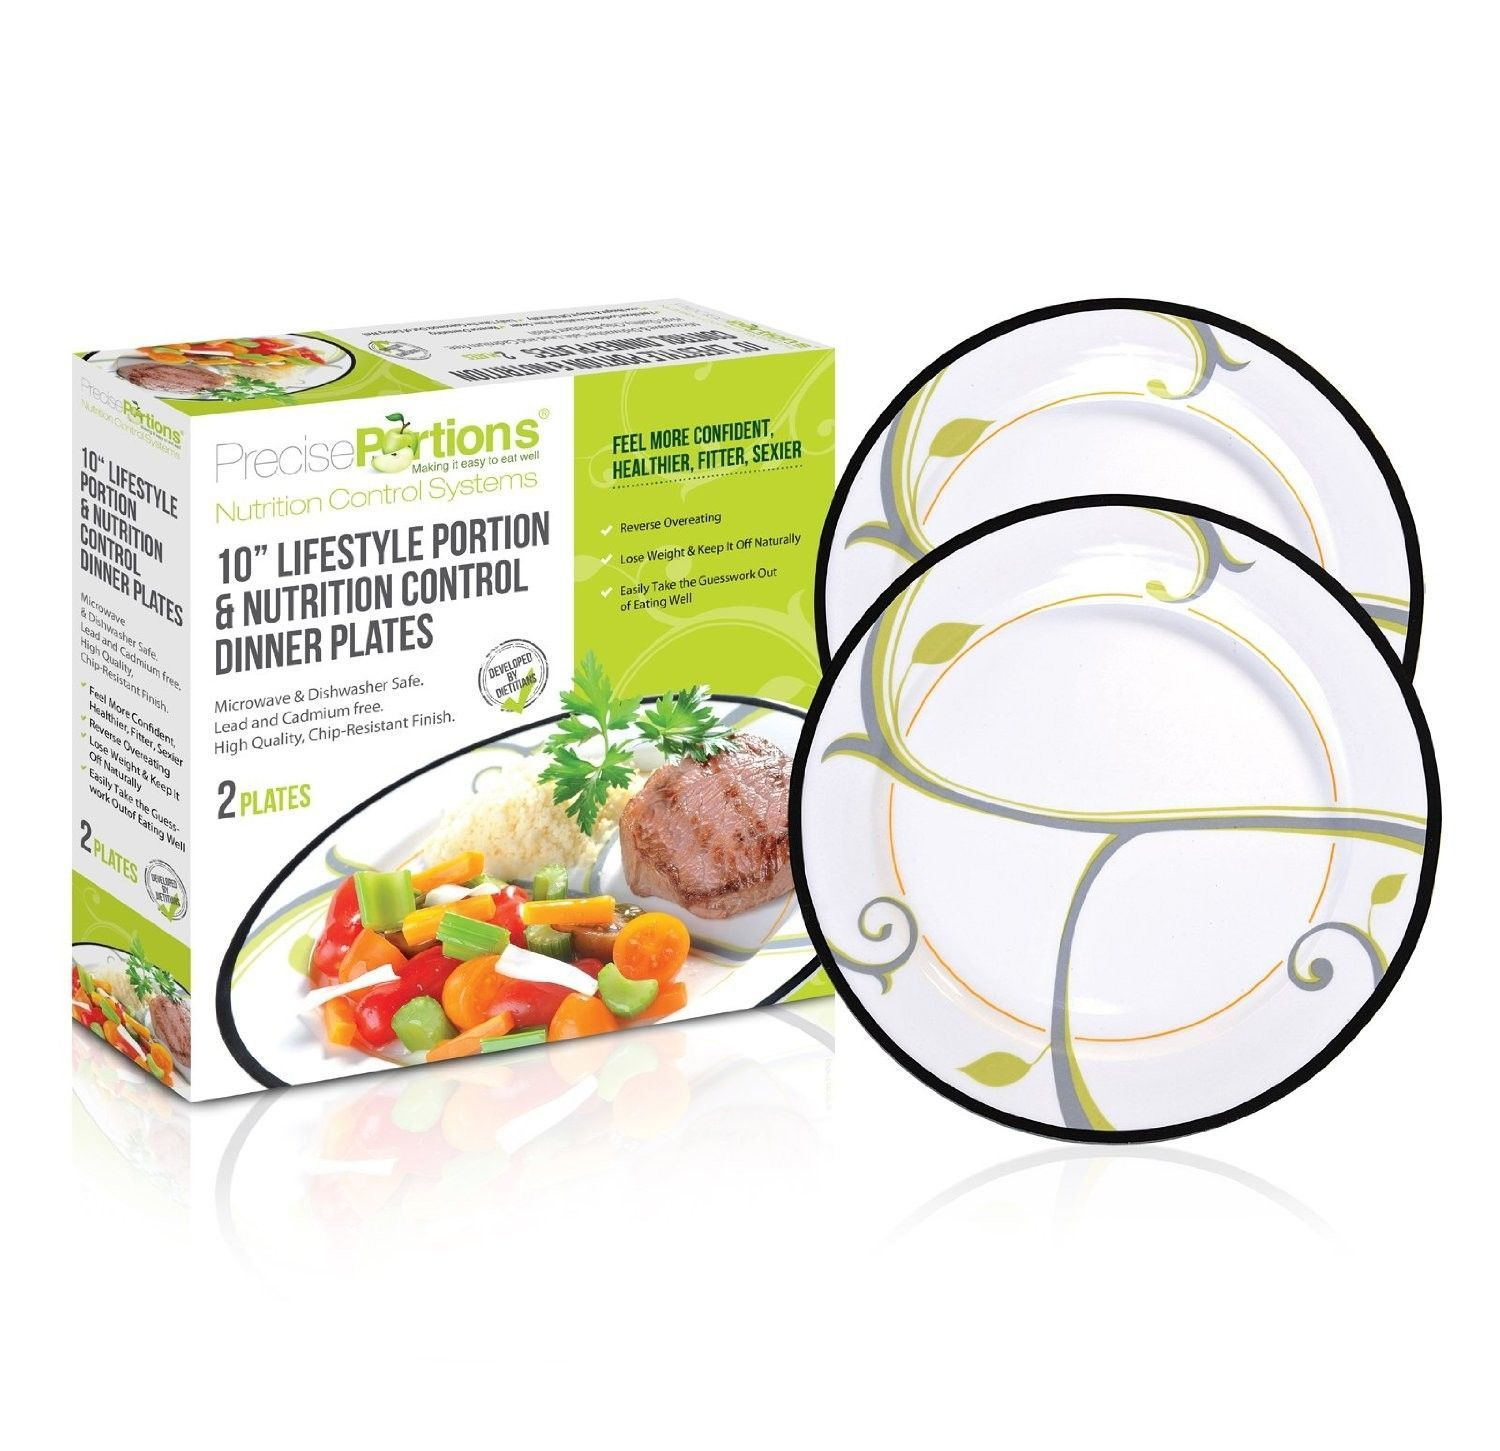 Healthy Lifestyle Nutrition and Portion Control Dinner Plate ...